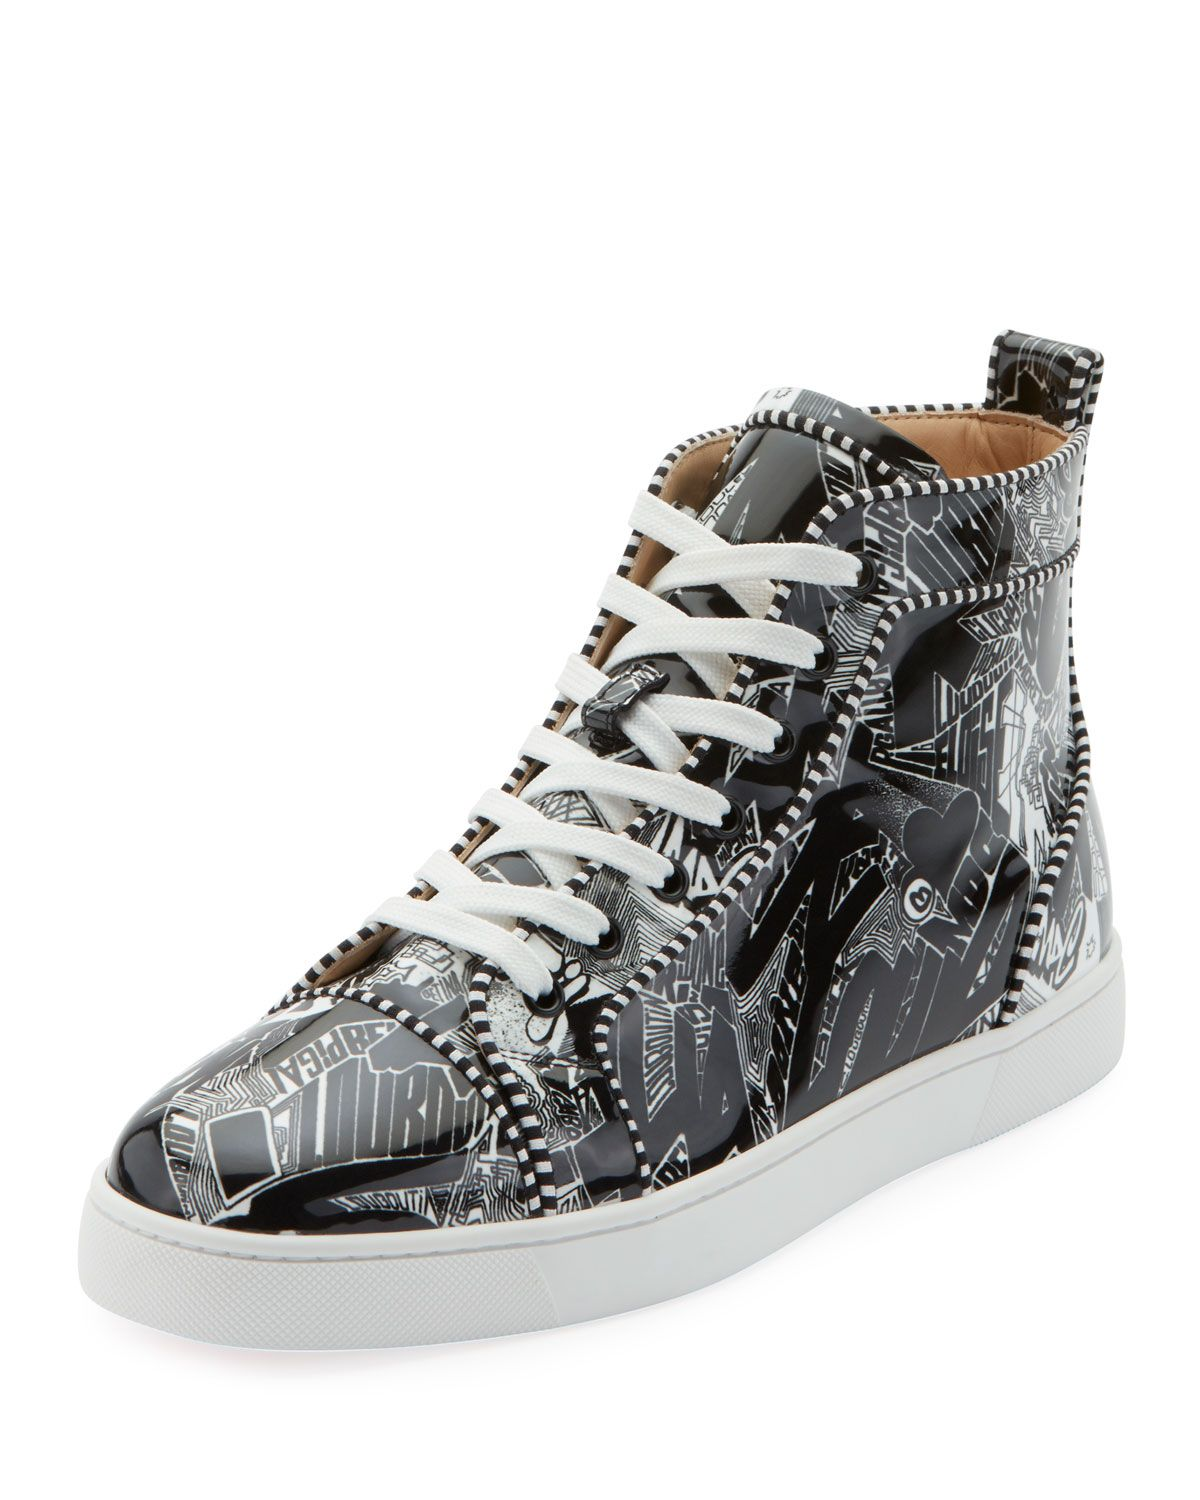 a0f69b9252fa CHRISTIAN LOUBOUTIN MEN S LOUIS ORLATO GRAFFITI HIGH-TOP SNEAKERS.   christianlouboutin  shoes